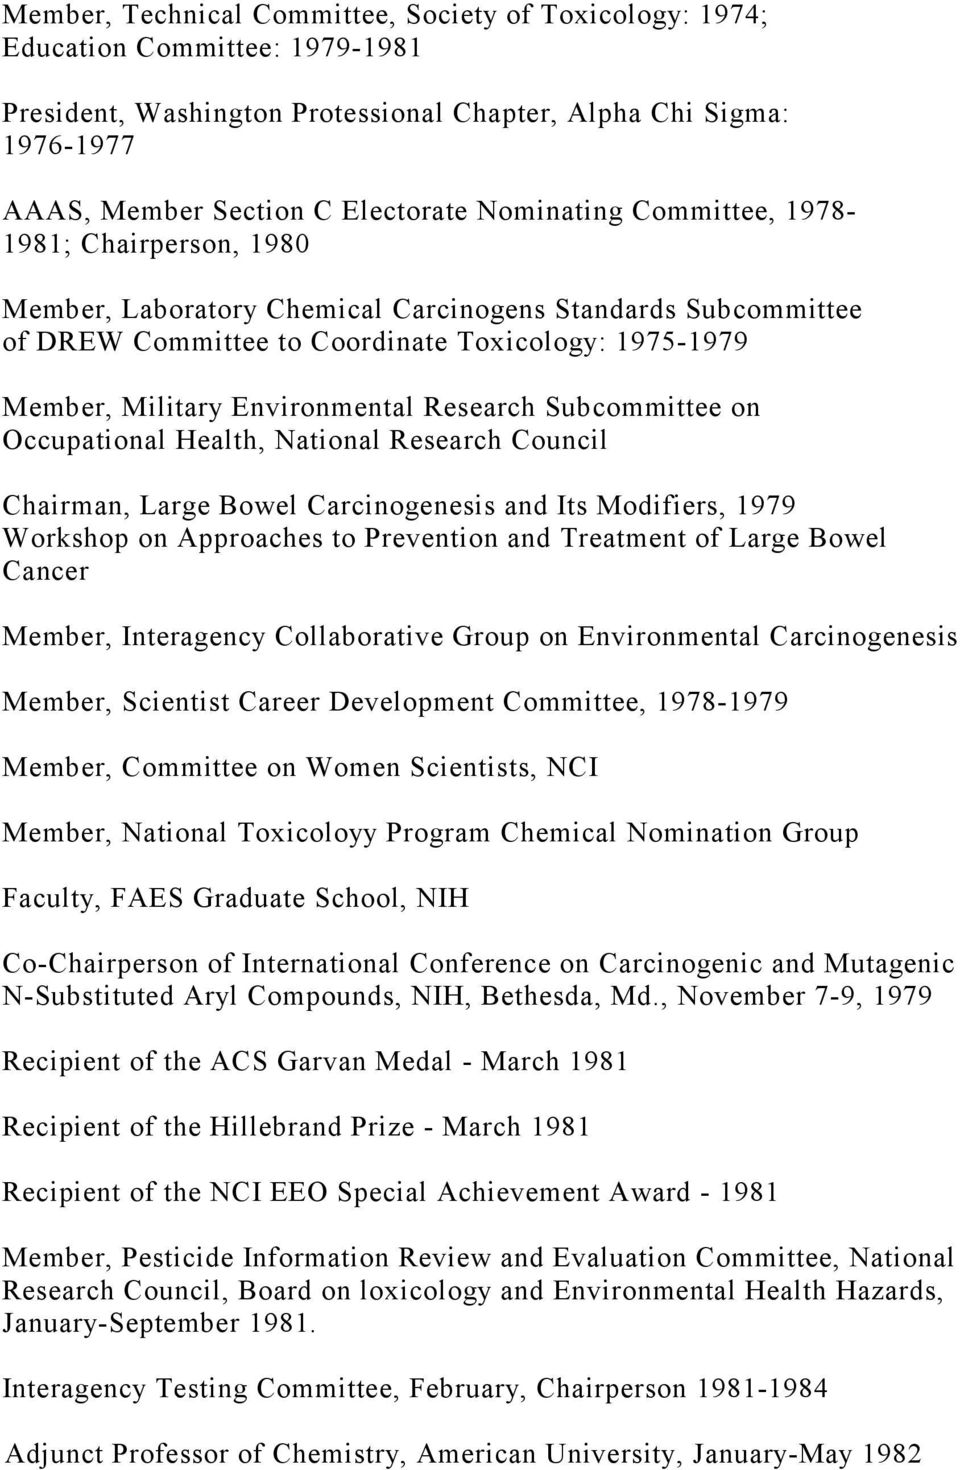 Research Subcommittee on Occupational Health, National Research Council Chairman, Large Bowel Carcinogenesis and Its Modifiers, 1979 Workshop on Approaches to Prevention and Treatment of Large Bowel